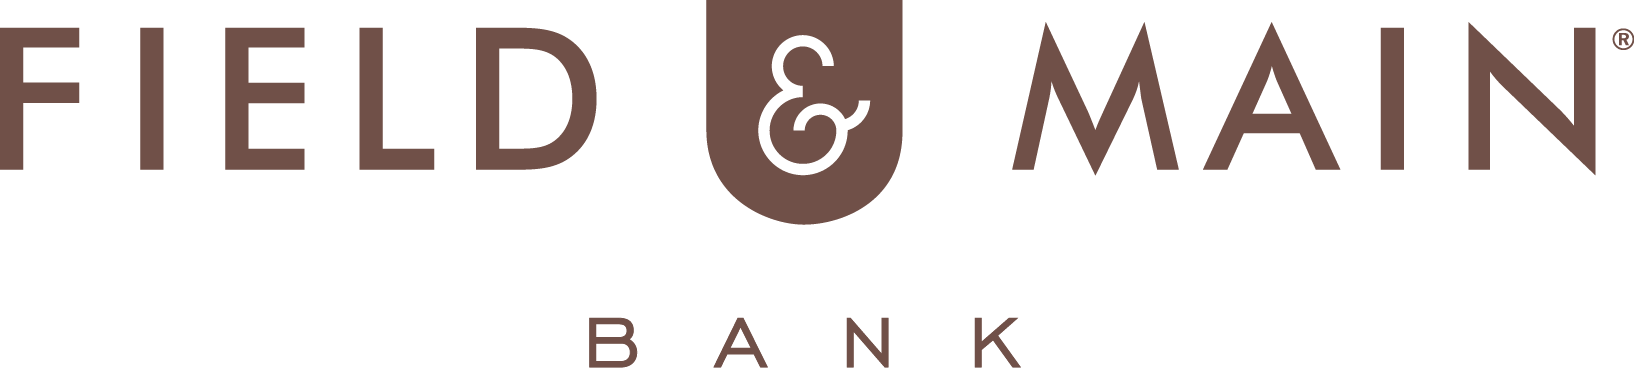 FAM Bank logo brown